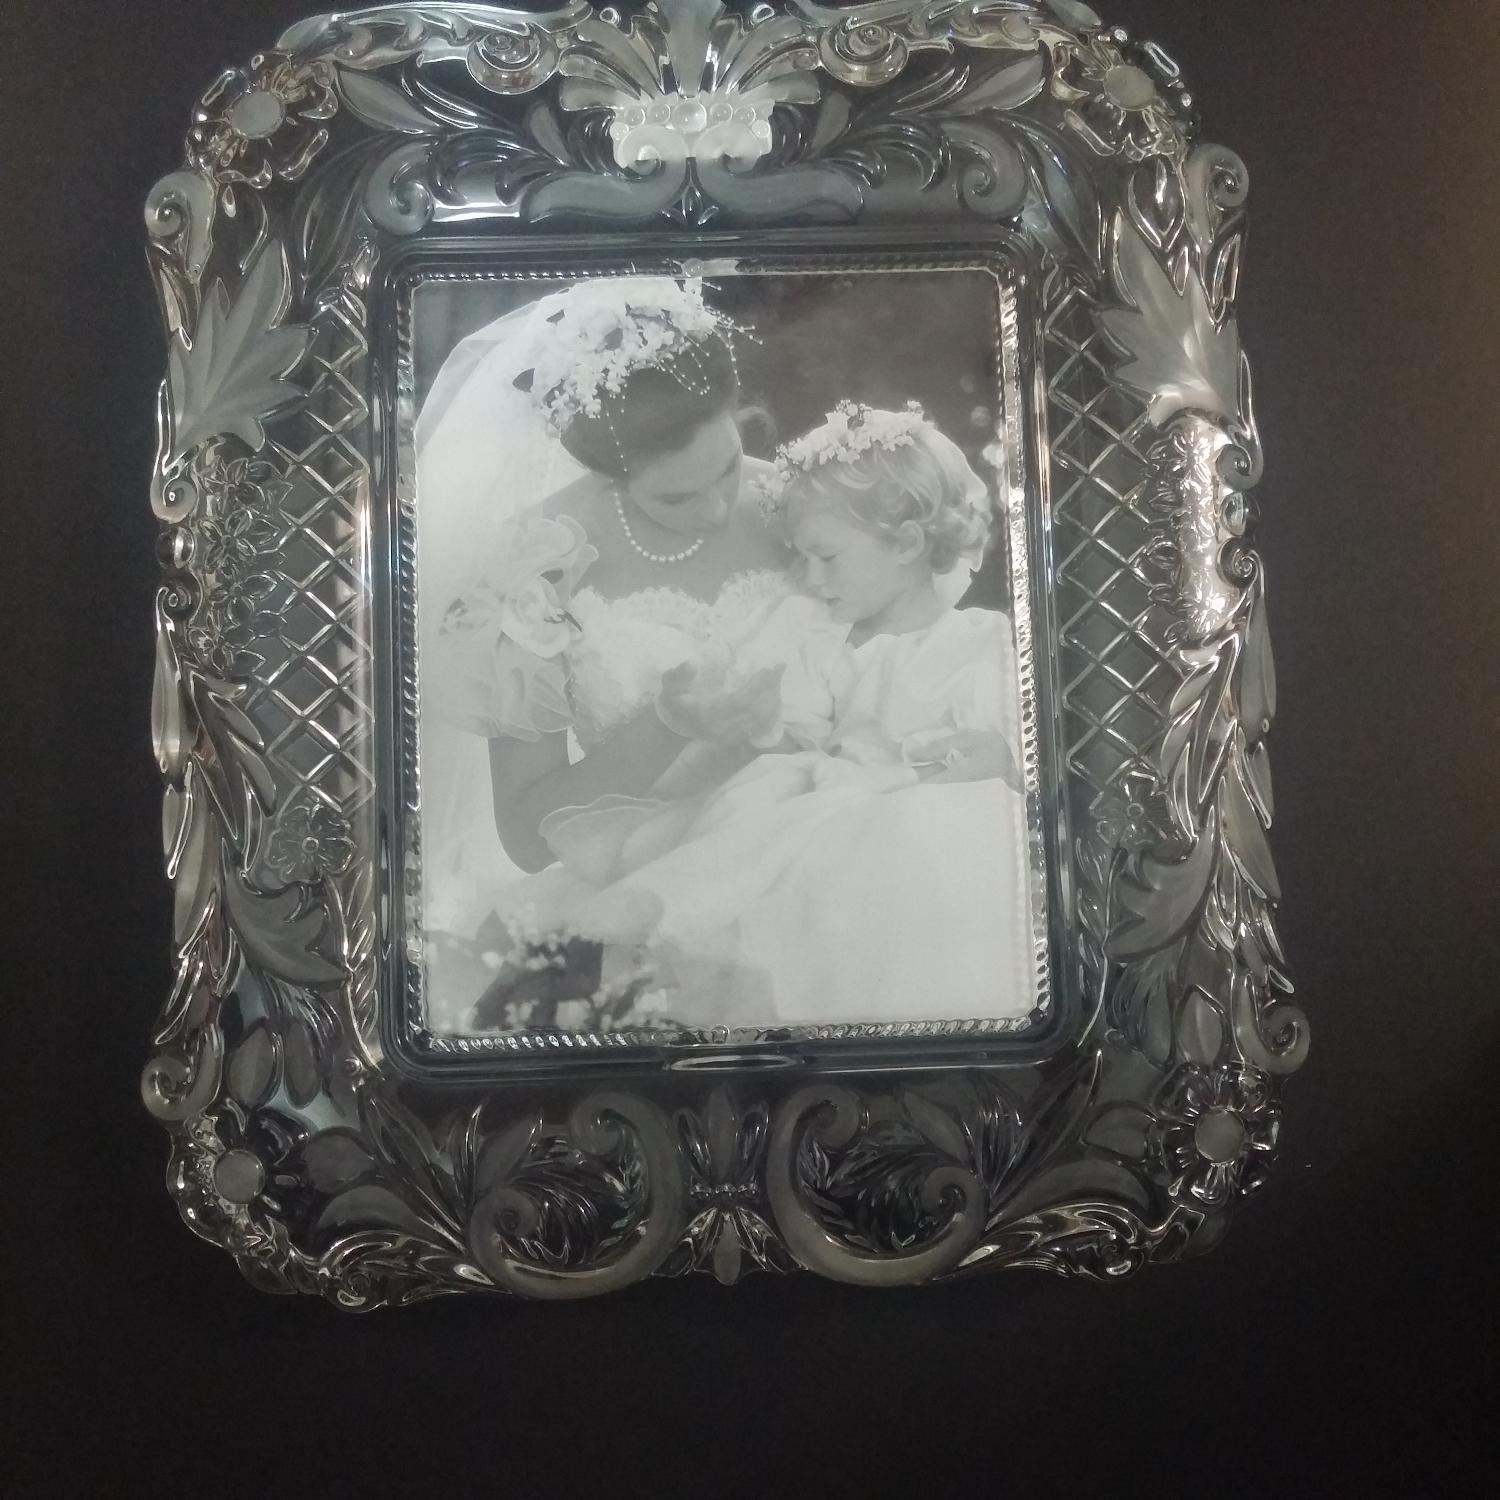 Best Mikasa Timeless Love 7x9 Crystal Frame For Sale In Oshawa